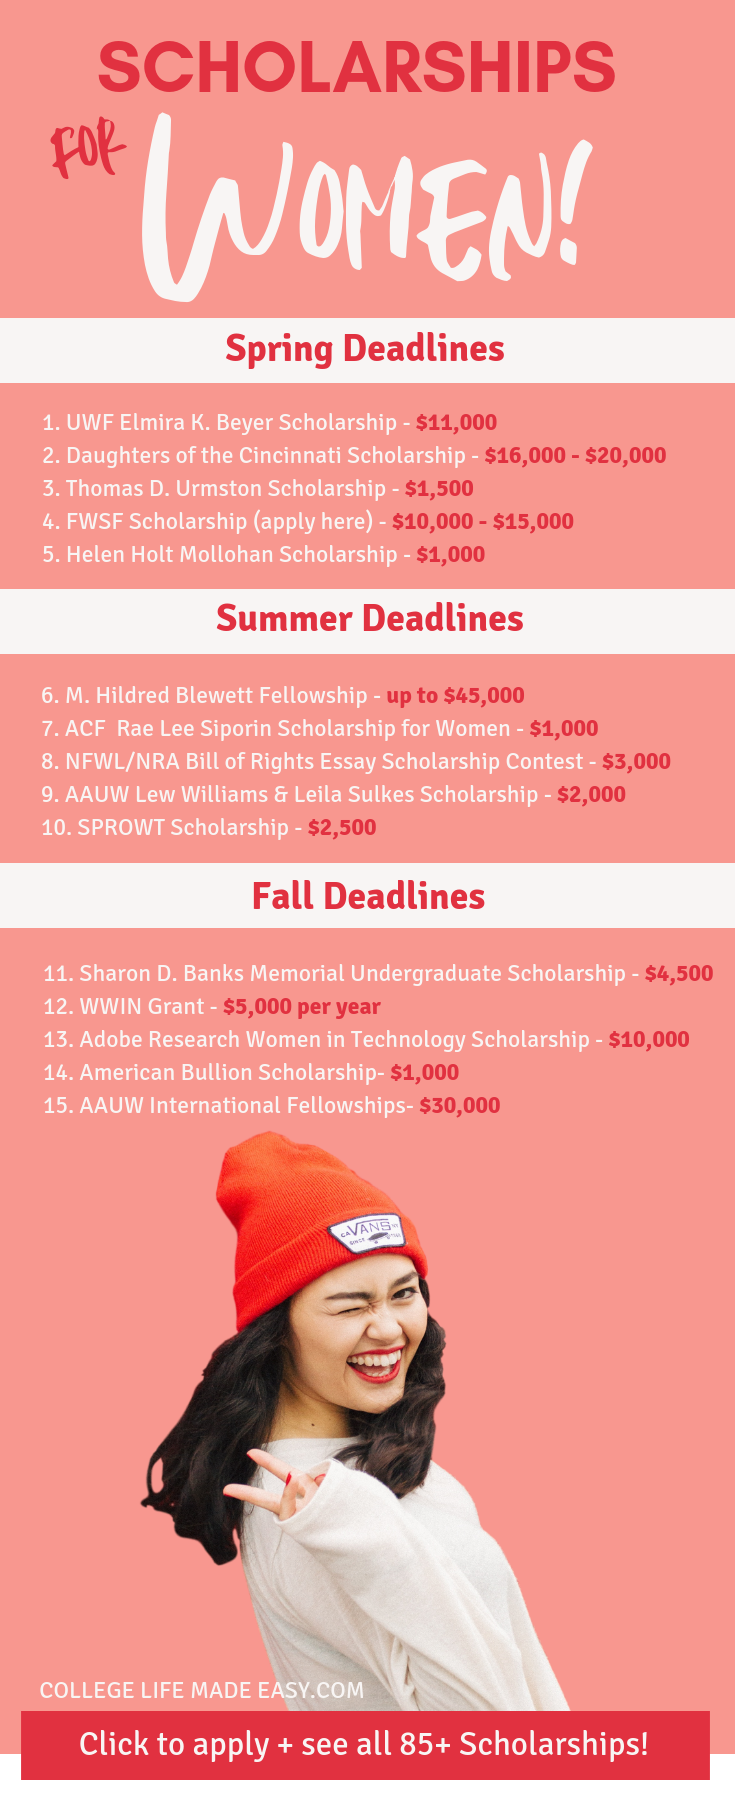 Over 85 CURRENT scholarships for women compiled into one handy list! These are scholarships for girls, mothers and all females who need money for college in 2019! #college #collegelife #student #scholarship #scholarships